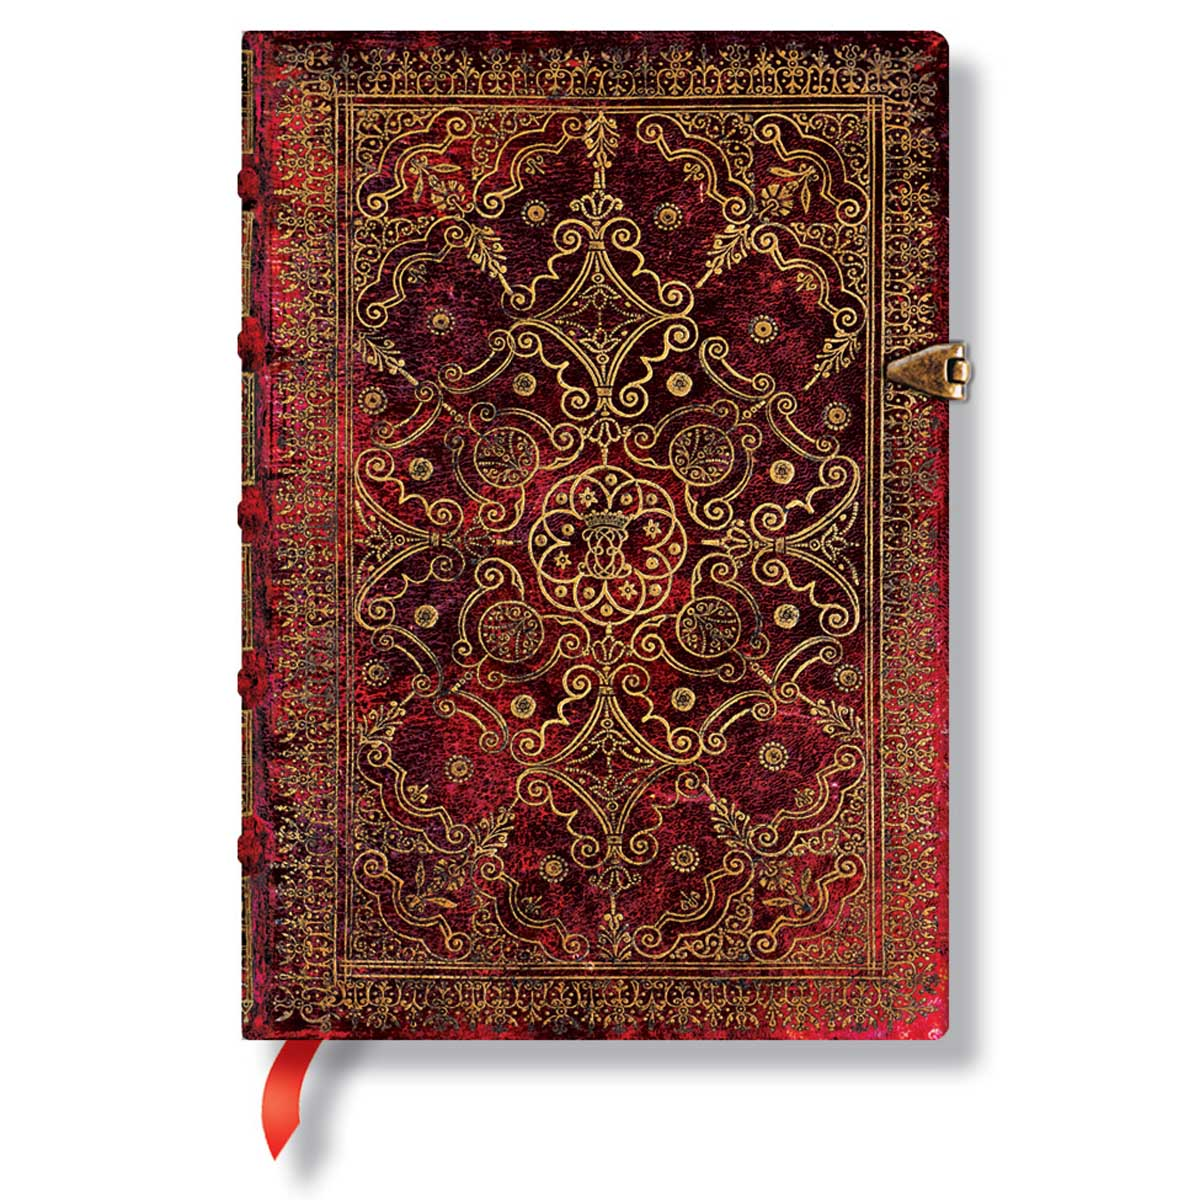 Paperblanks Equinoxe Carmine Midi 5x7 Inch Lined Journal